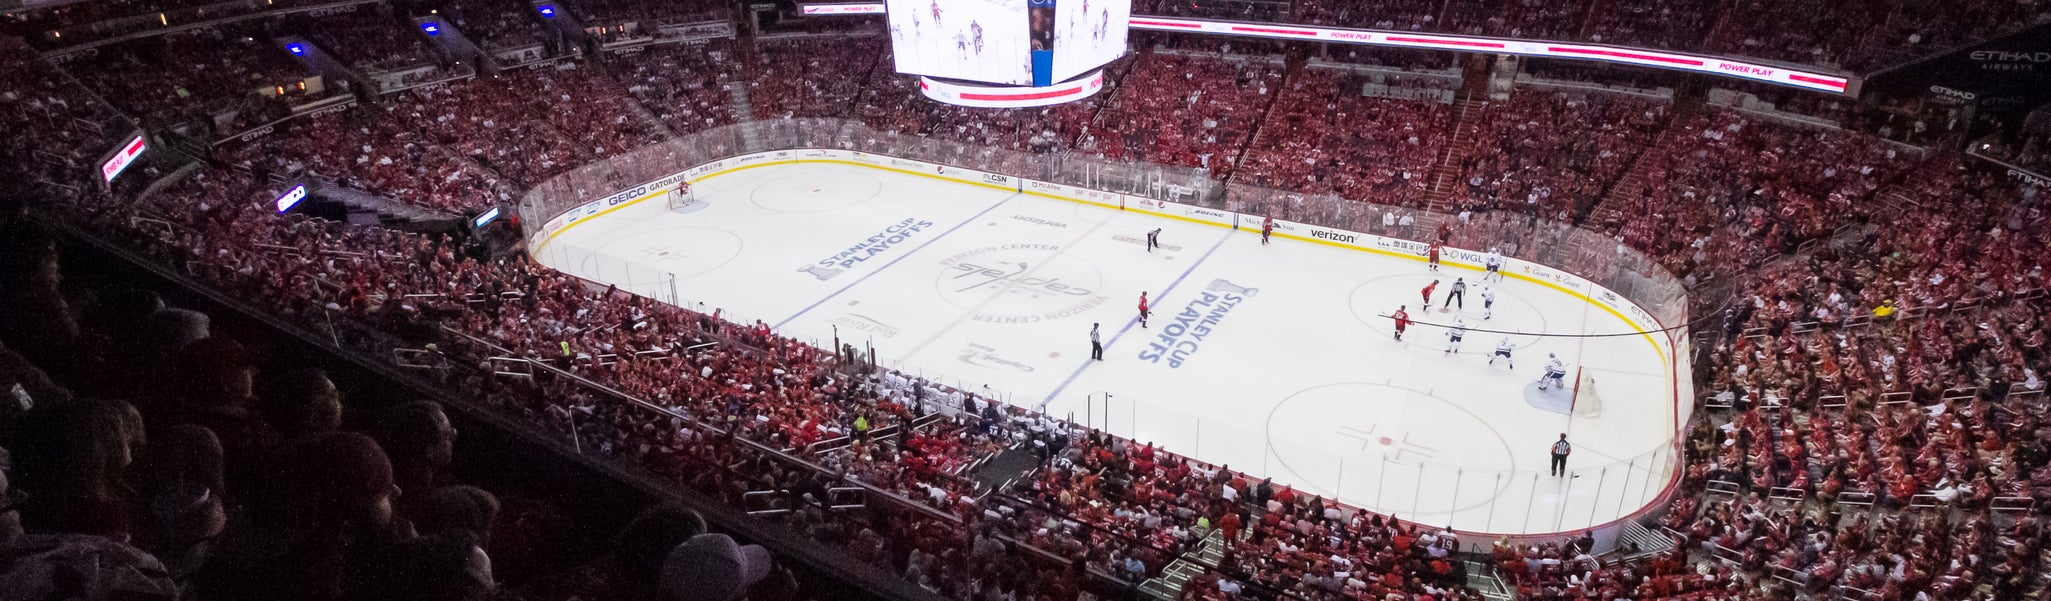 Seat view from Mezzanine Corner 403 at Capital One Arena